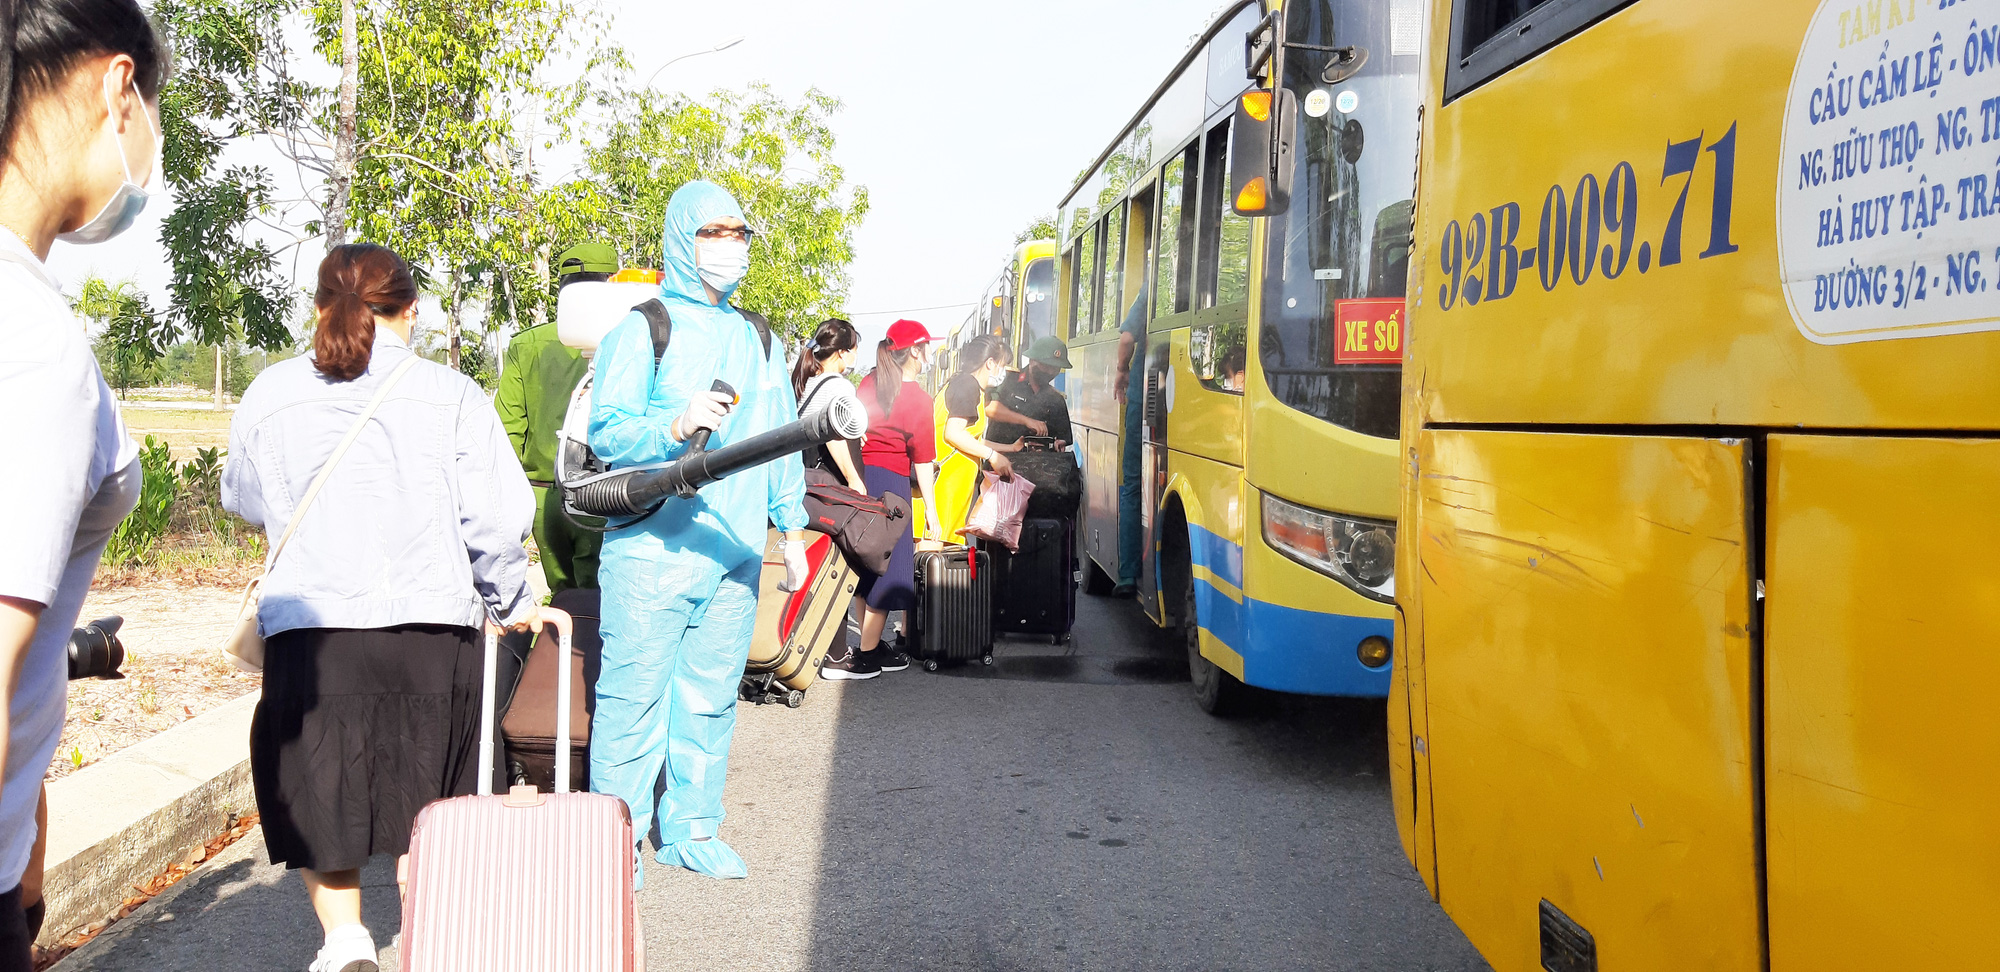 A medical worker disinfects buses used to transport residents at a novel coronavirus disease (COVID-19) quarantine zone in Quang Nam Province, Vietnam to the airport after they have completed their mandatory quarantine, June 12, 2020. Photo: Le Trung / Tuoi Tre